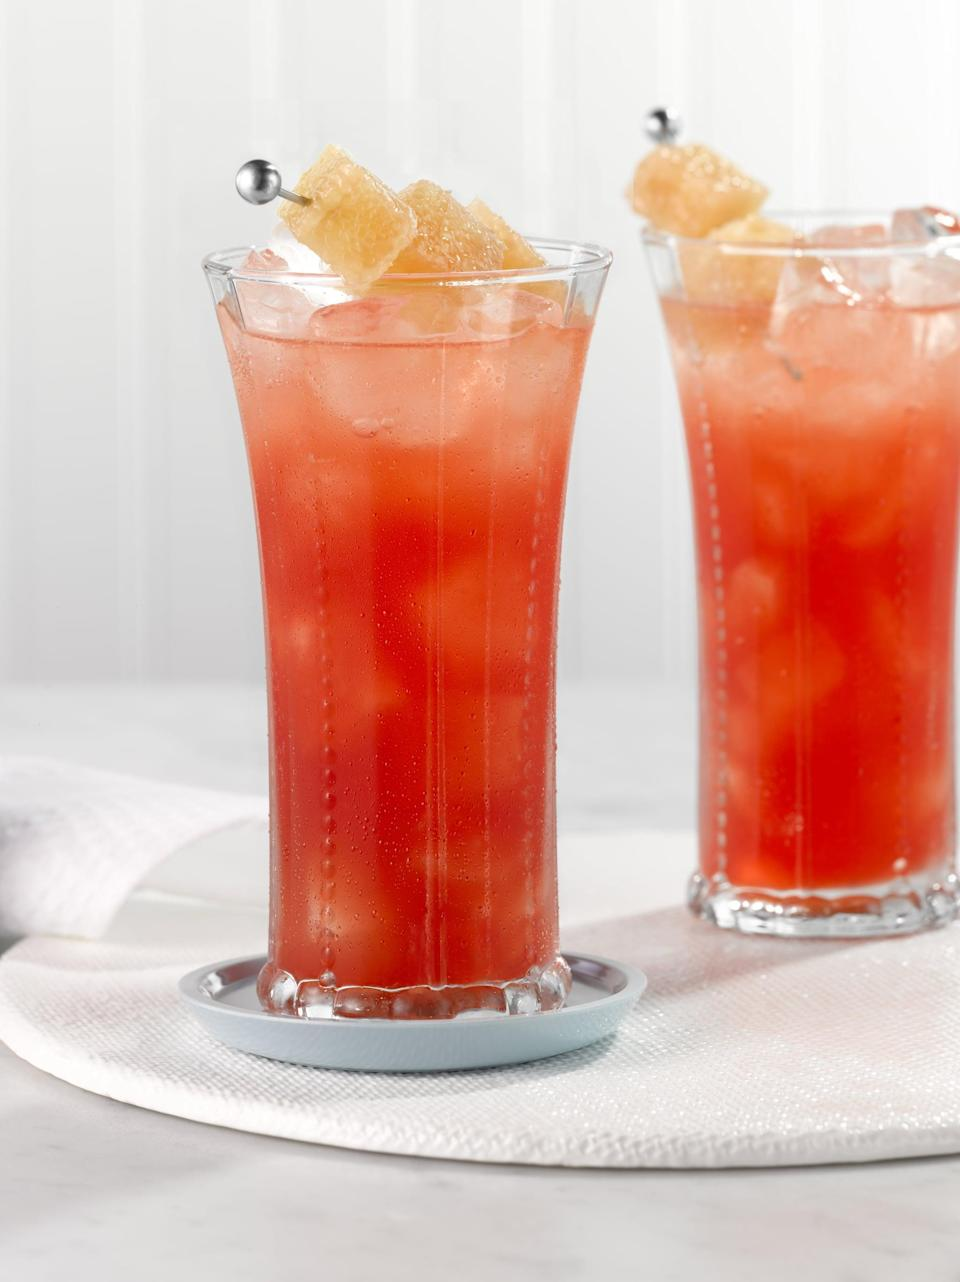 """<p>With inspiration from the cosmopolitan, the oaks lily cocktail is light, refreshing, and supercute. Kentucky knows that when you can't go to the races, you might as well bring them home to you. Giddy up!</p> <p><strong>Get the recipe</strong>: <a href=""""https://www.popsugar.com/buy?url=https%3A%2F%2Fwww.liquor.com%2Frecipes%2Foaks-lily%2F&p_name=oaks%20lily&retailer=liquor.com&evar1=yum%3Aus&evar9=47471653&evar98=https%3A%2F%2Fwww.popsugar.com%2Ffood%2Fphoto-gallery%2F47471653%2Fimage%2F47475453%2FKentucky-Oaks-Lily&list1=cocktails%2Cdrinks%2Calcohol%2Crecipes&prop13=api&pdata=1"""" class=""""link rapid-noclick-resp"""" rel=""""nofollow noopener"""" target=""""_blank"""" data-ylk=""""slk:oaks lily"""">oaks lily</a></p>"""